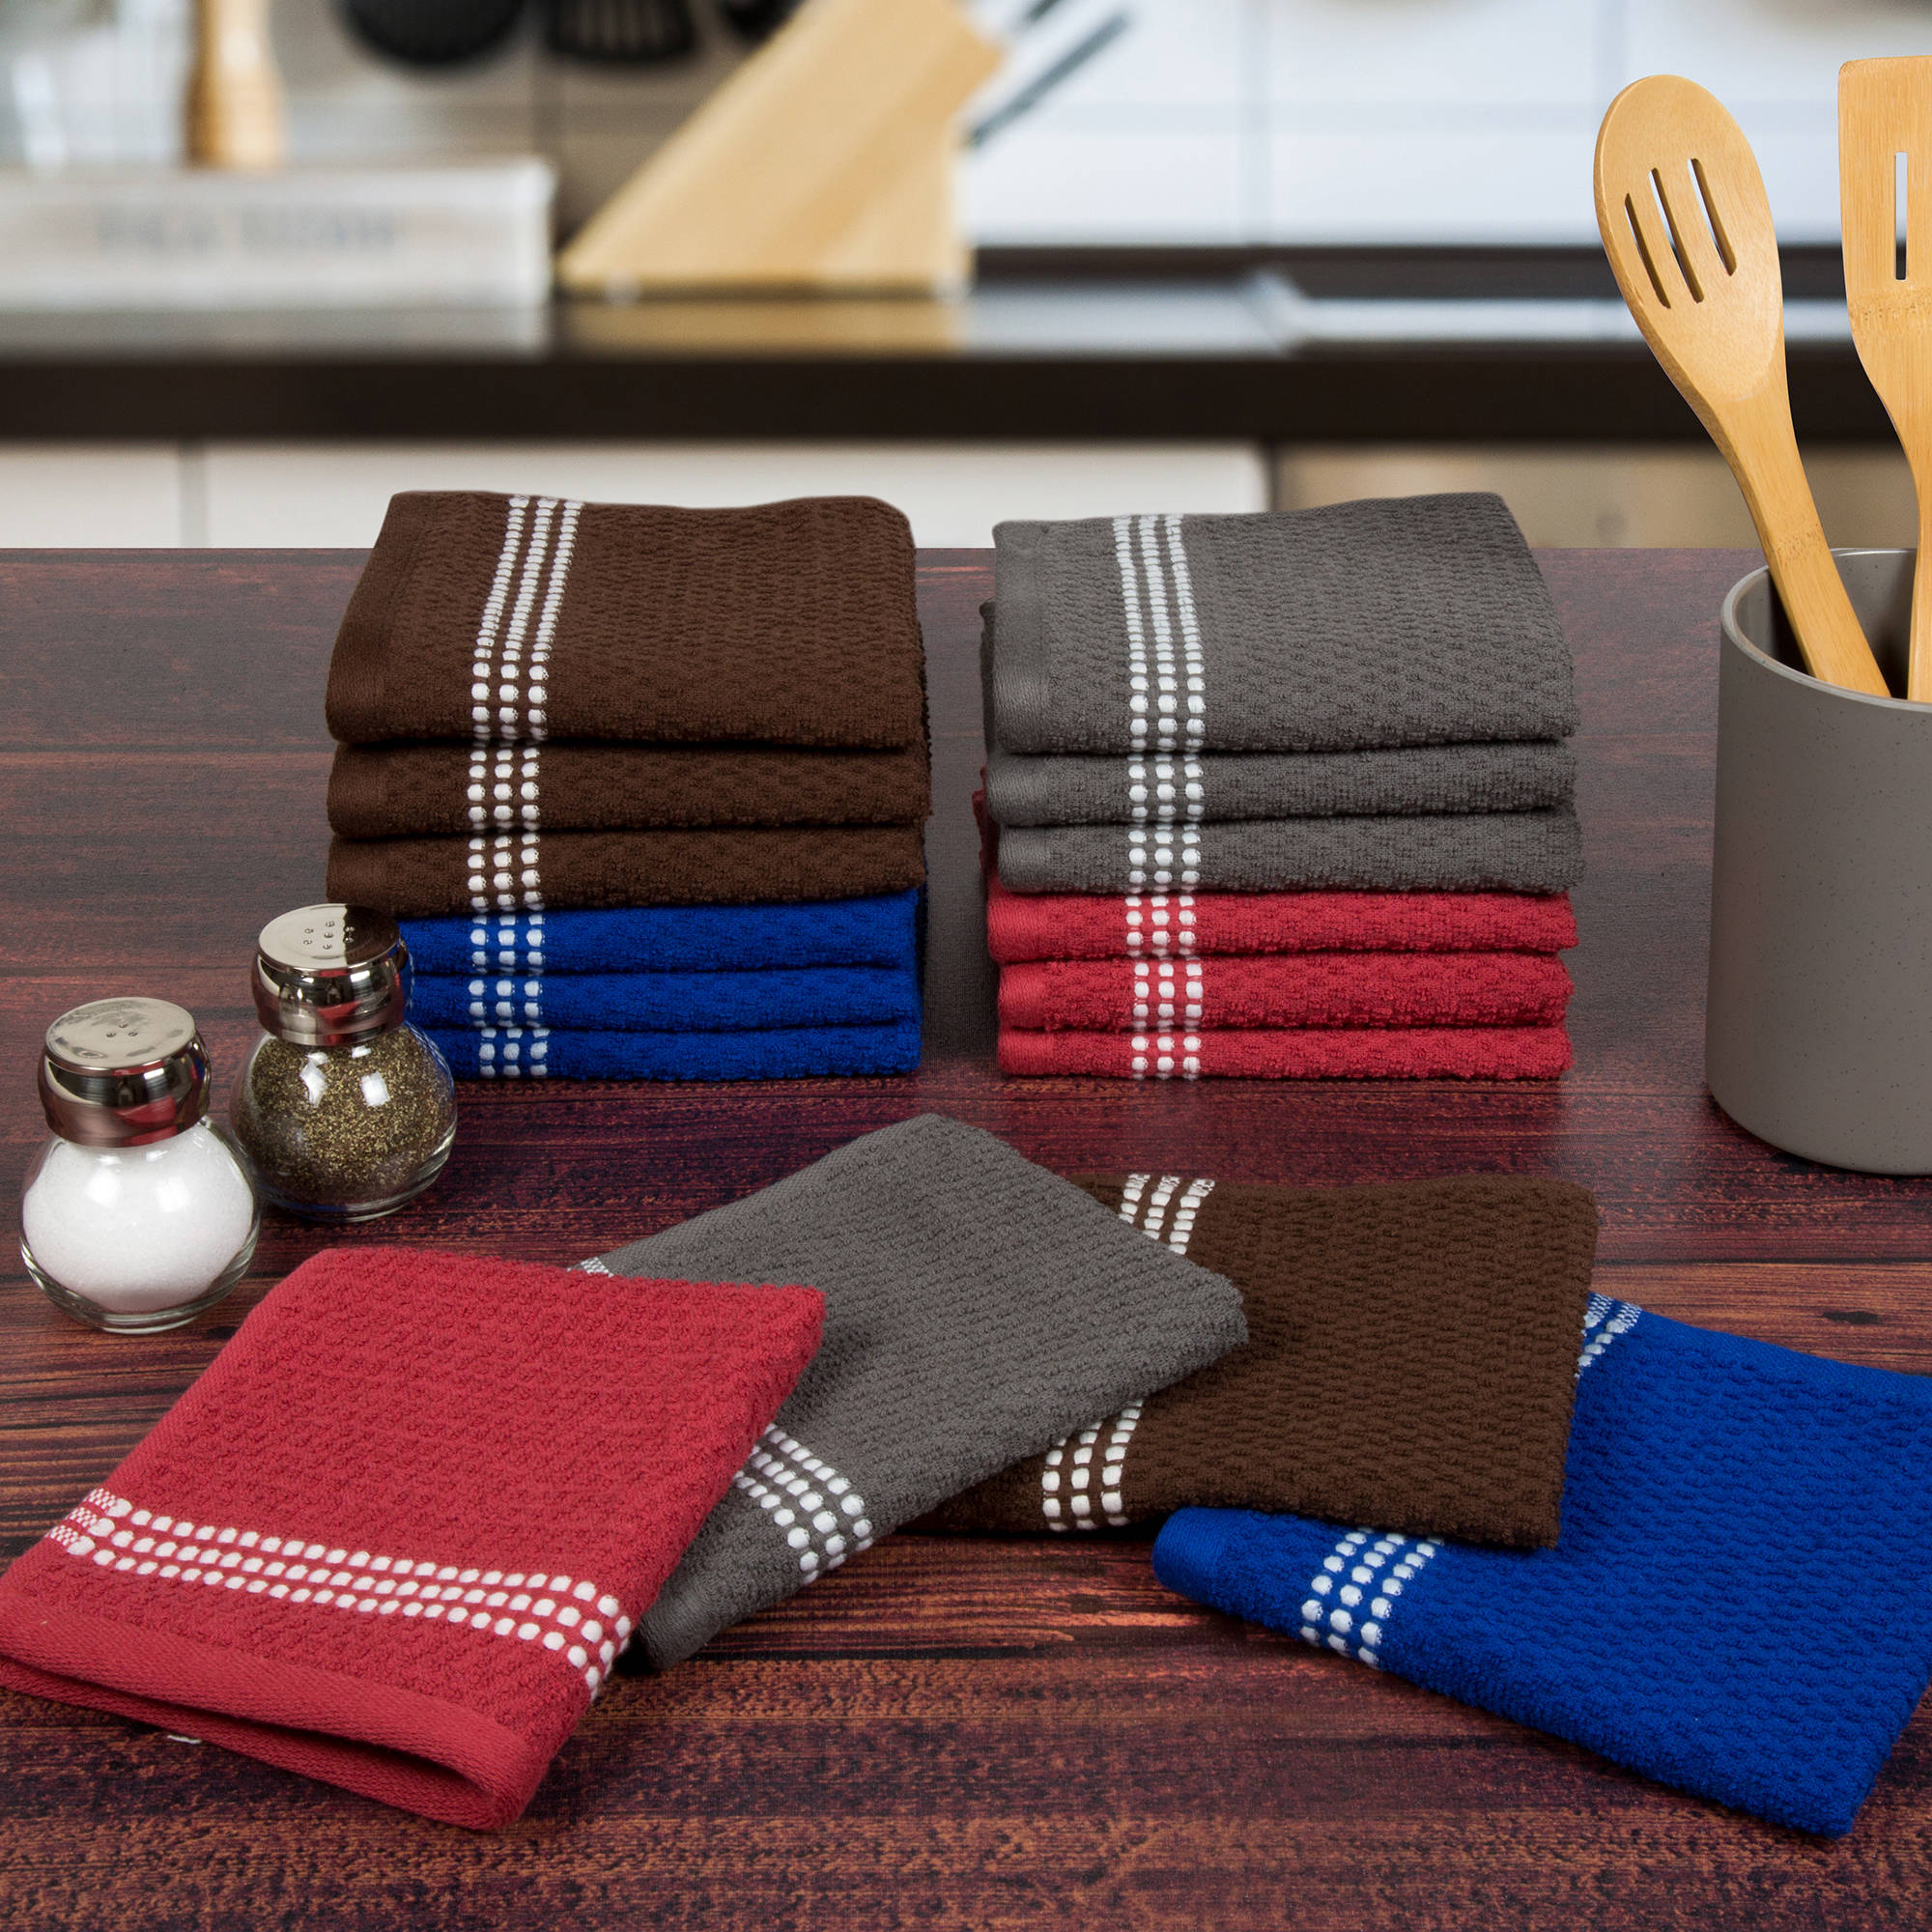 Click here to buy Somerset Home 16 Piece Cotton Popcorn Terry Kitchen Towel Washcloth Set by Trademark Global LLC.